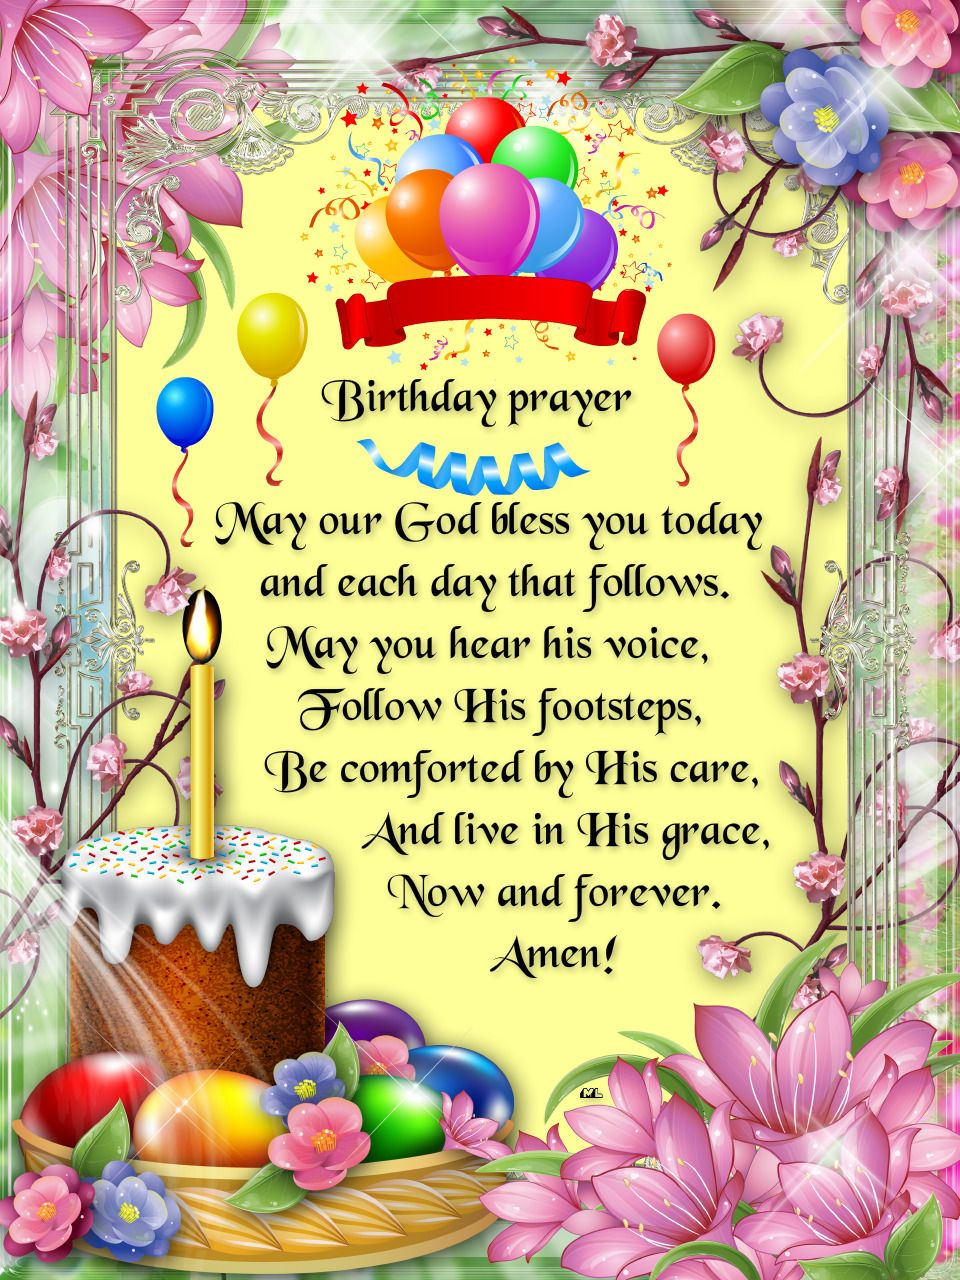 Birthday prayer May our God bless you today and each day